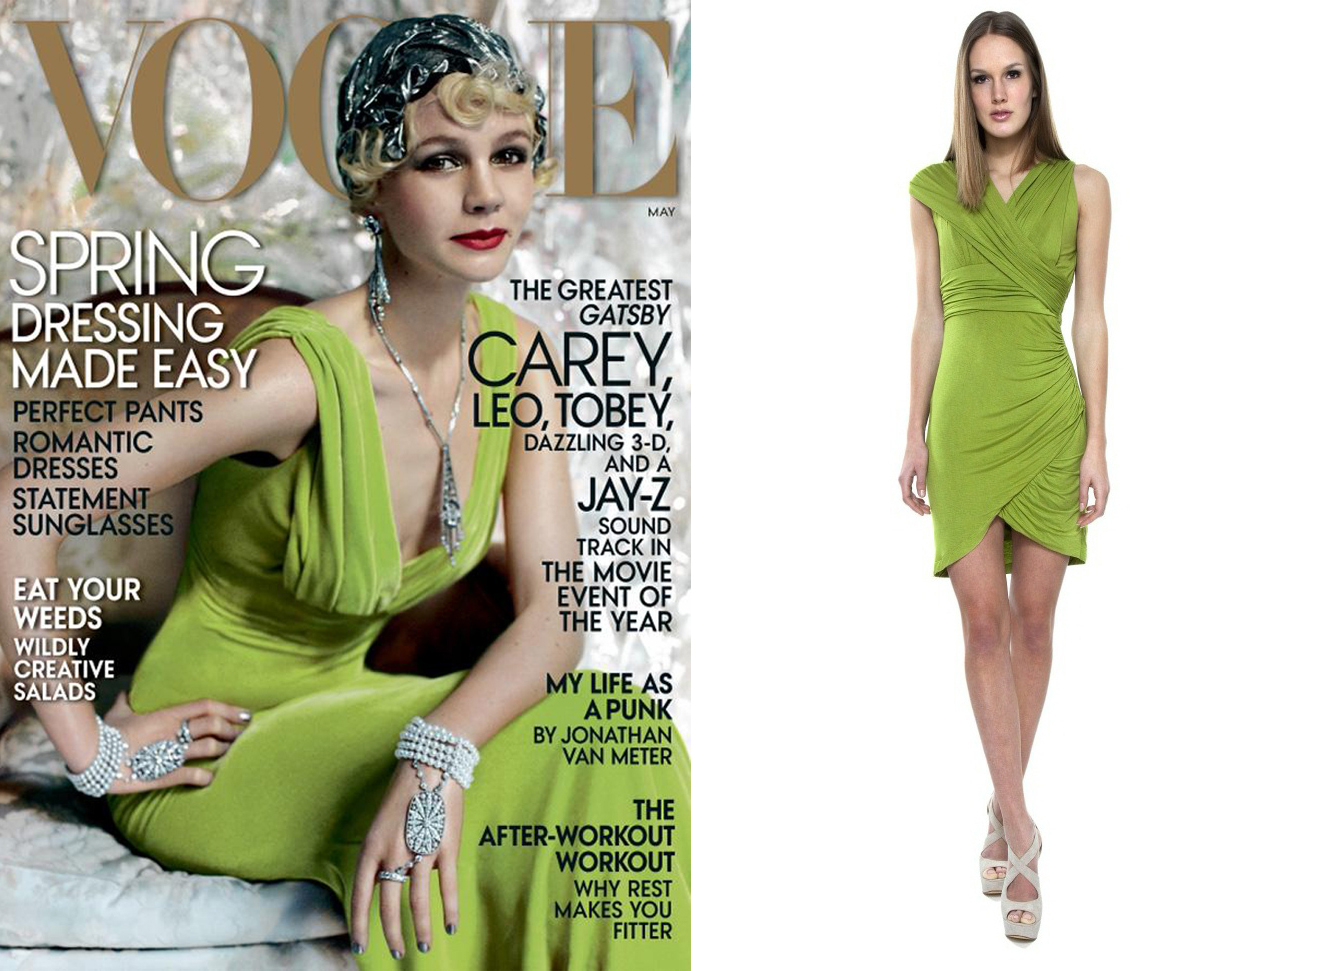 7ce9d12ccb6c Go Green!---Yes, kids it's all about Green--particularly this shade of  Chartreuse. On the left is actress Carey Mulligan of Baz Luhrmann's  forthcoming ...